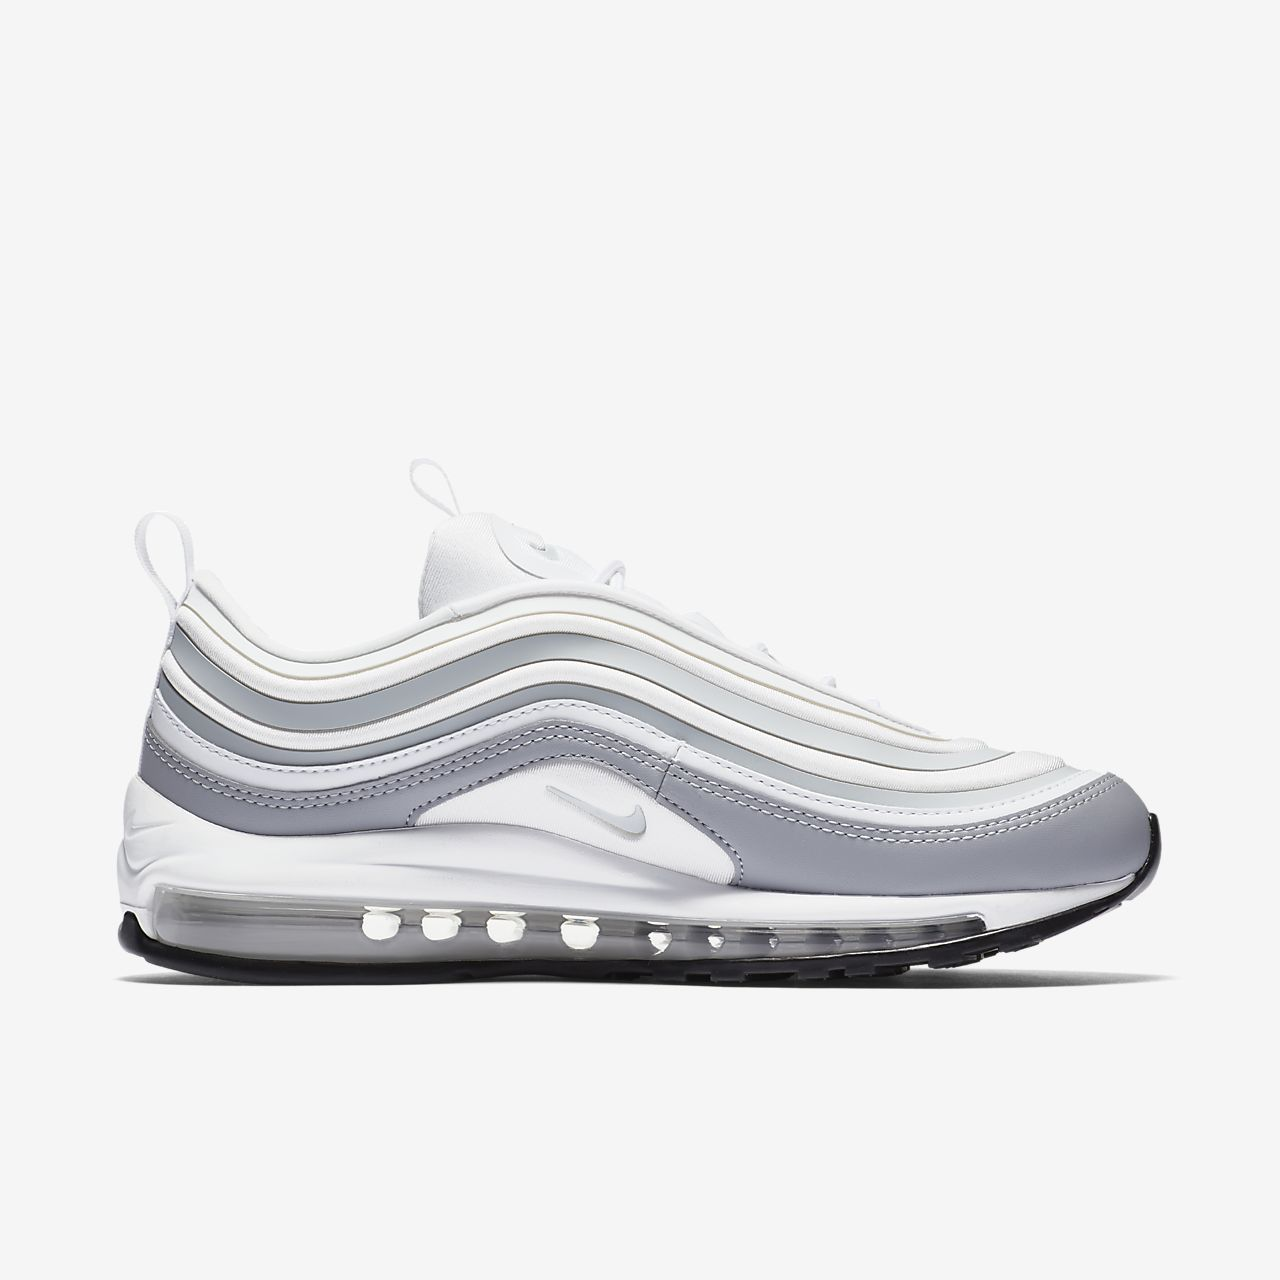 nike air max 97 ultra '17 women's shoe white closed